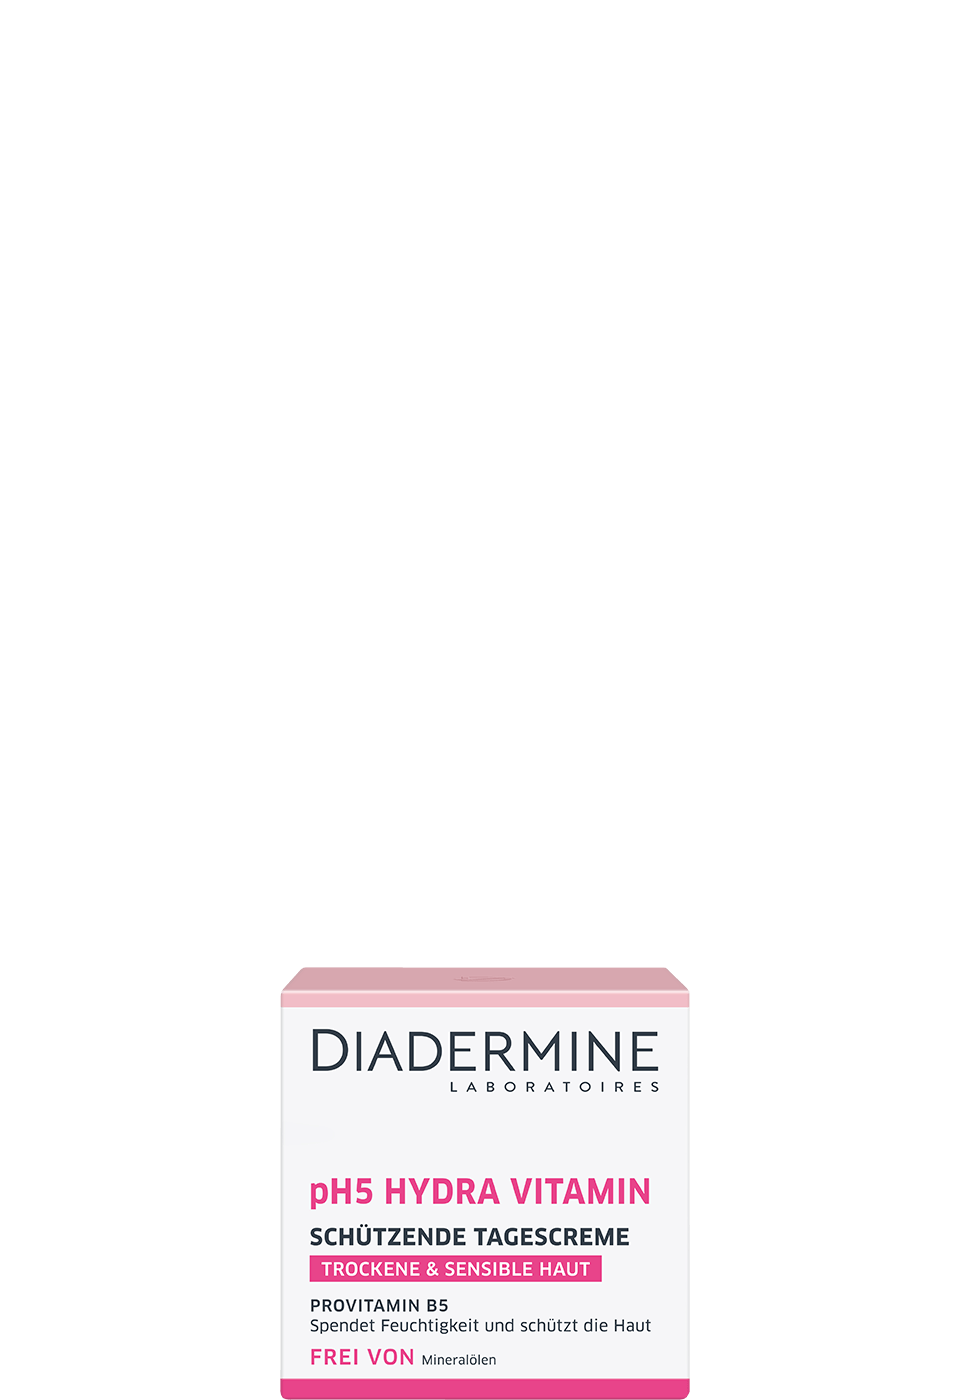 diadermine_at_essentials_ph5_hydra_vitamin_tagespflege_970x1400